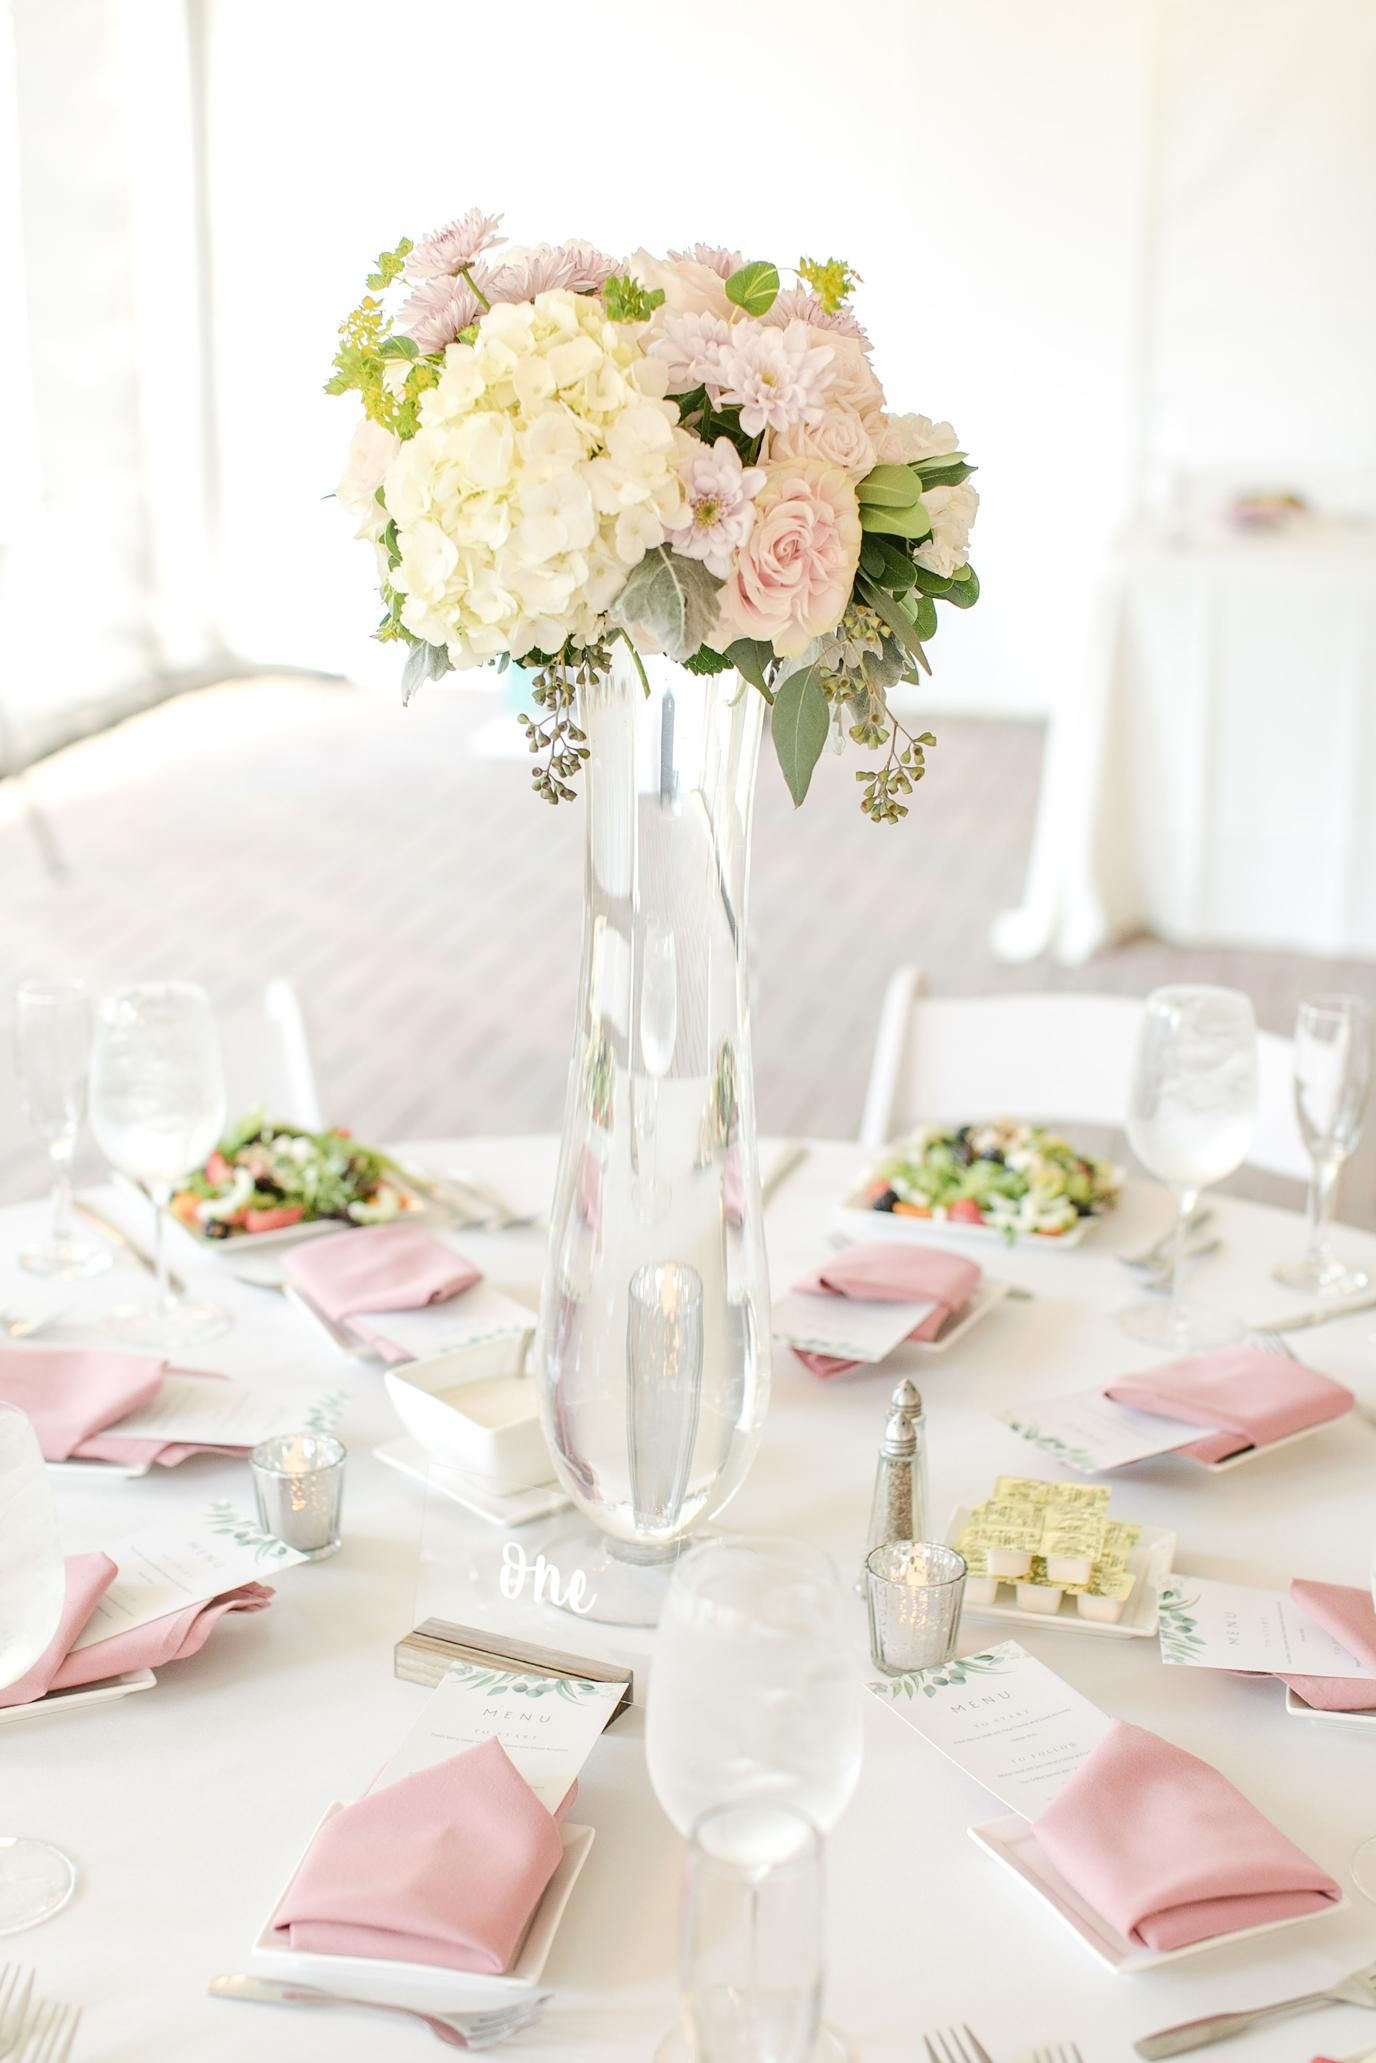 A Classy and Elegant Blush Wedding at The Gardens of Woodstock ...